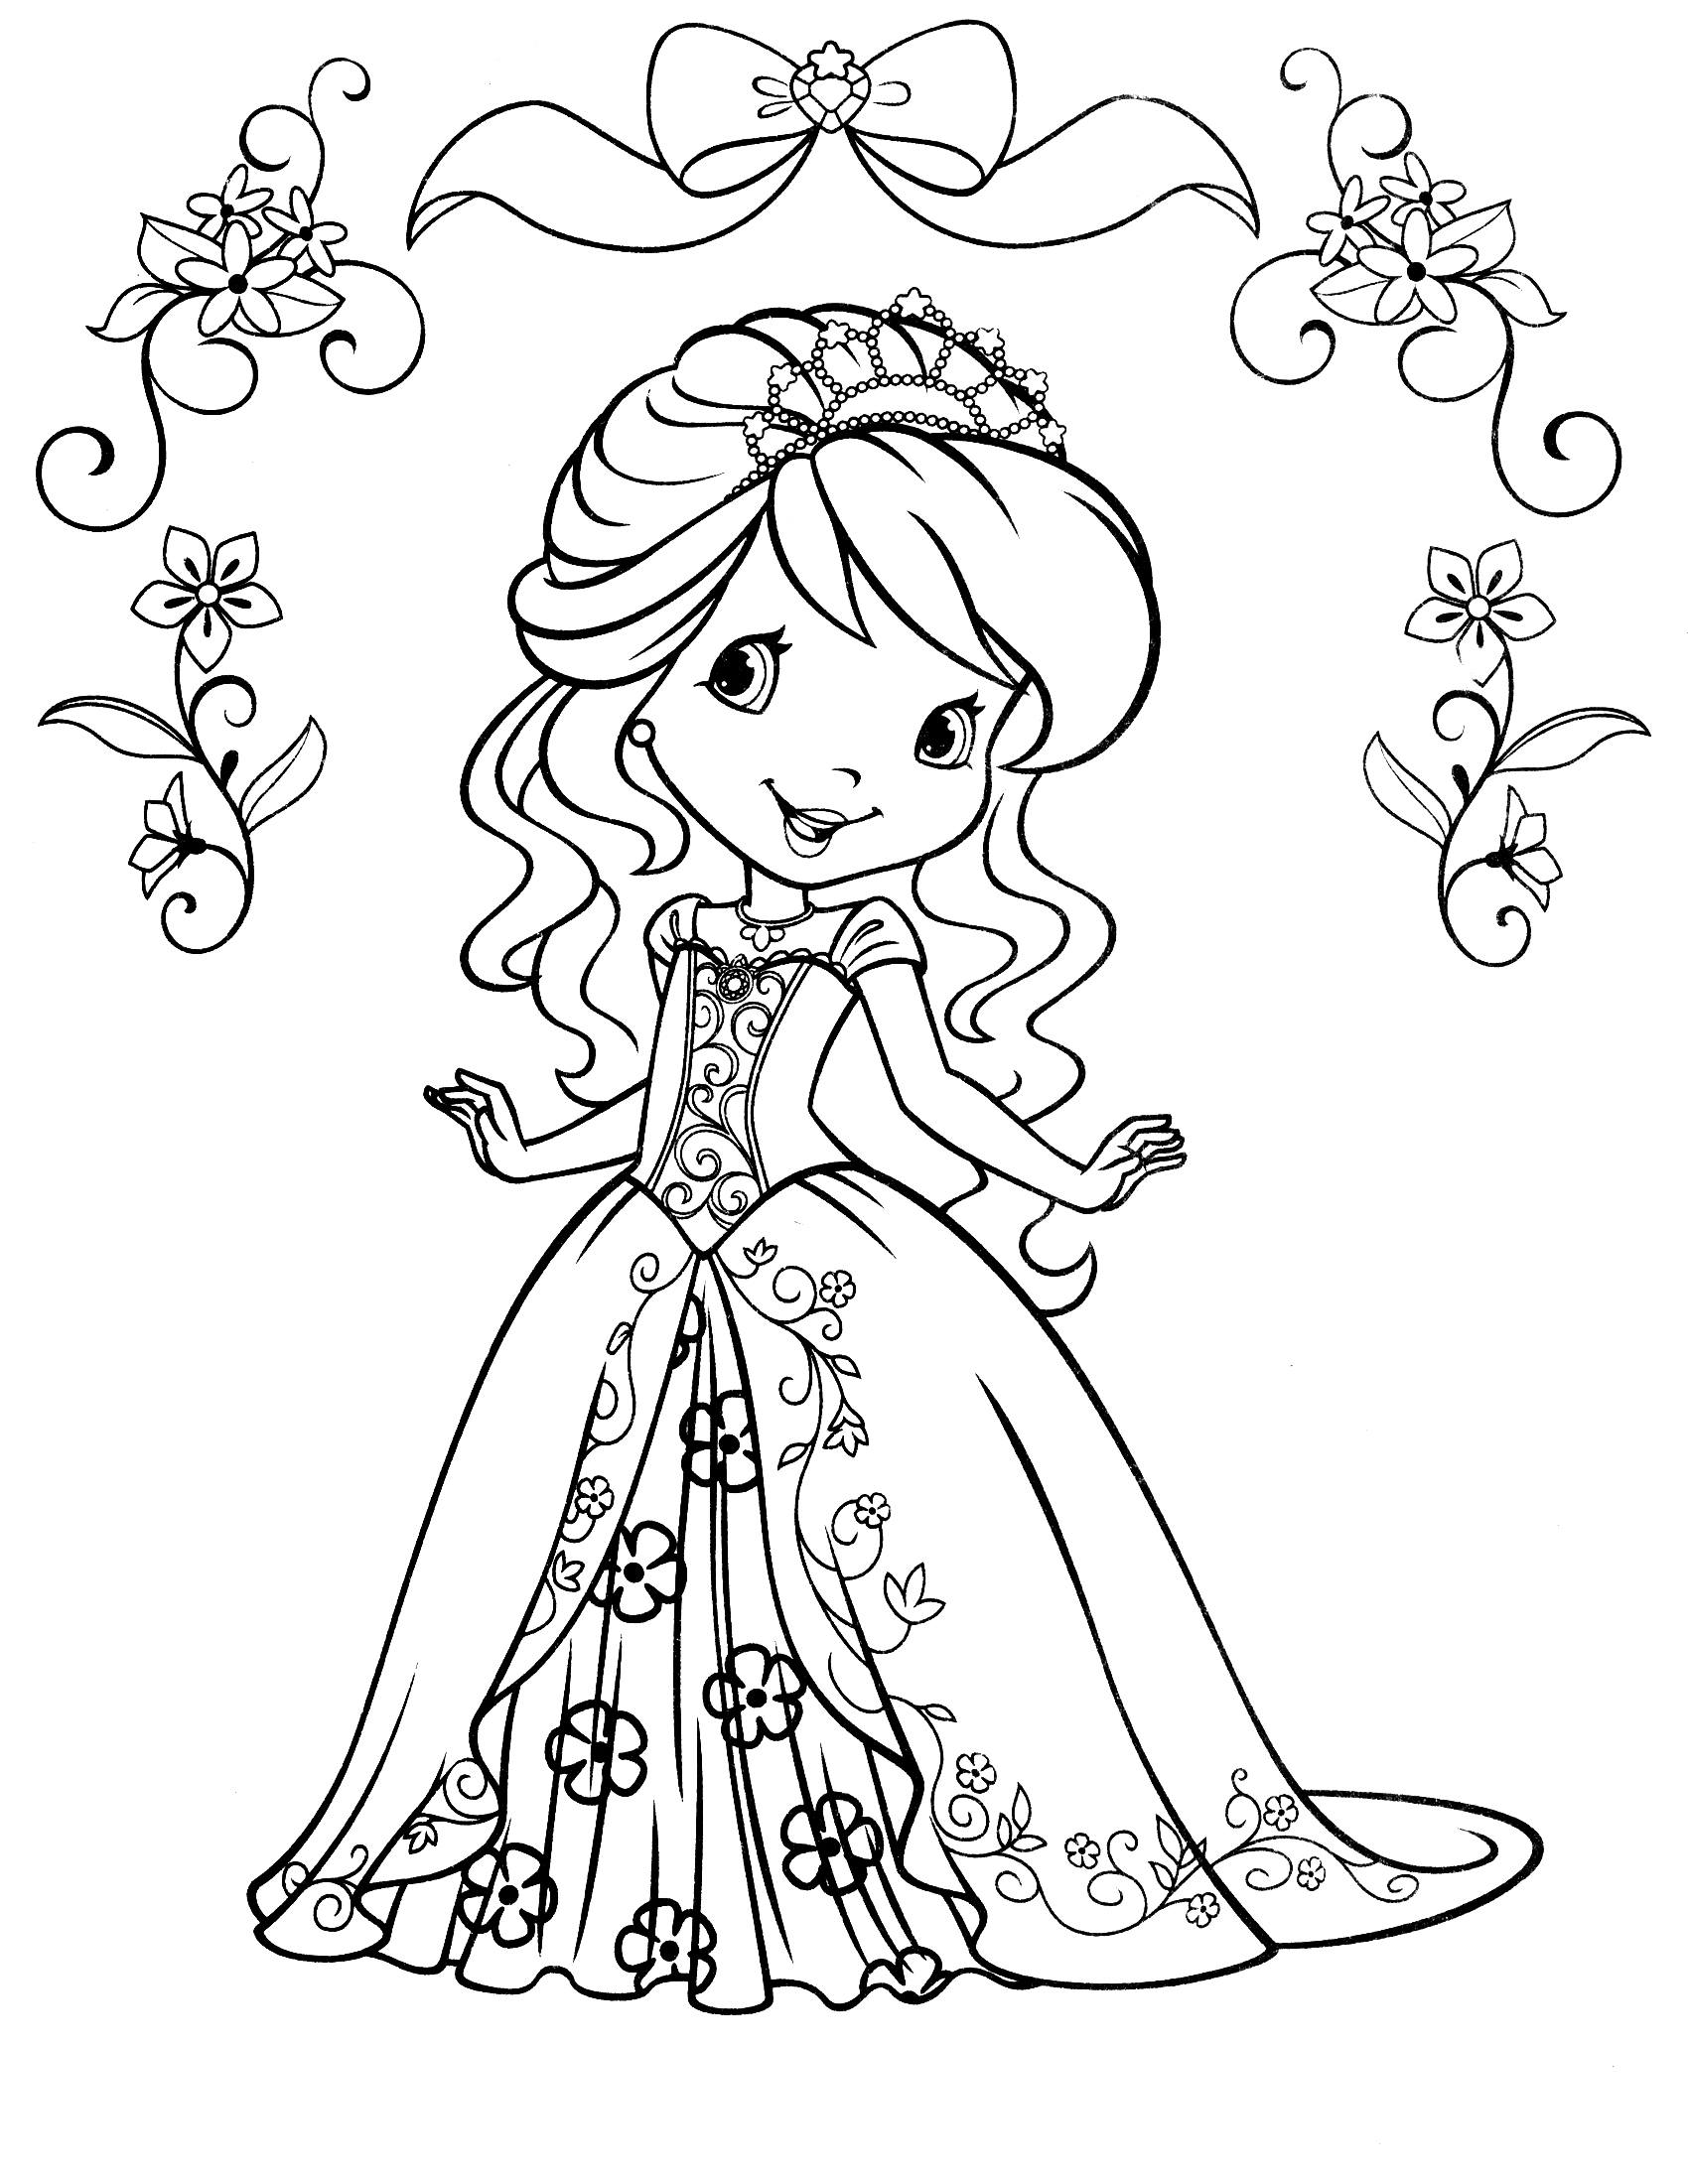 strawberry shortcake coloring pages photo - 1